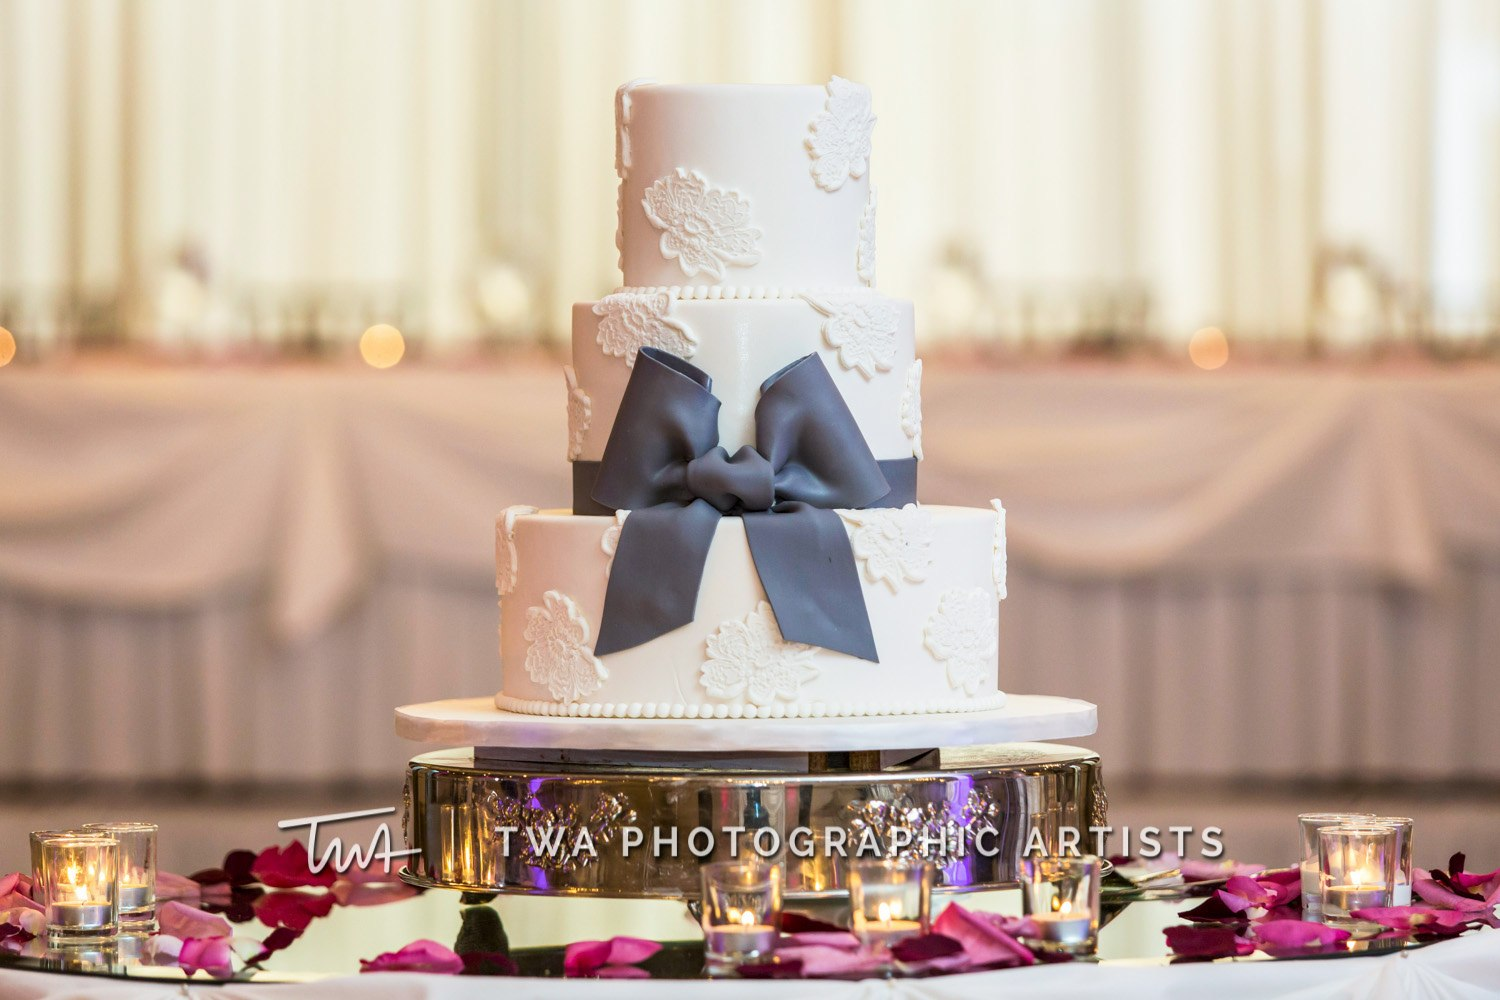 Chicago-Wedding-Photographer-TWA-Photographic-Artists-Belvedere-Banquets_Galway_Galway_MiC_DR-0988